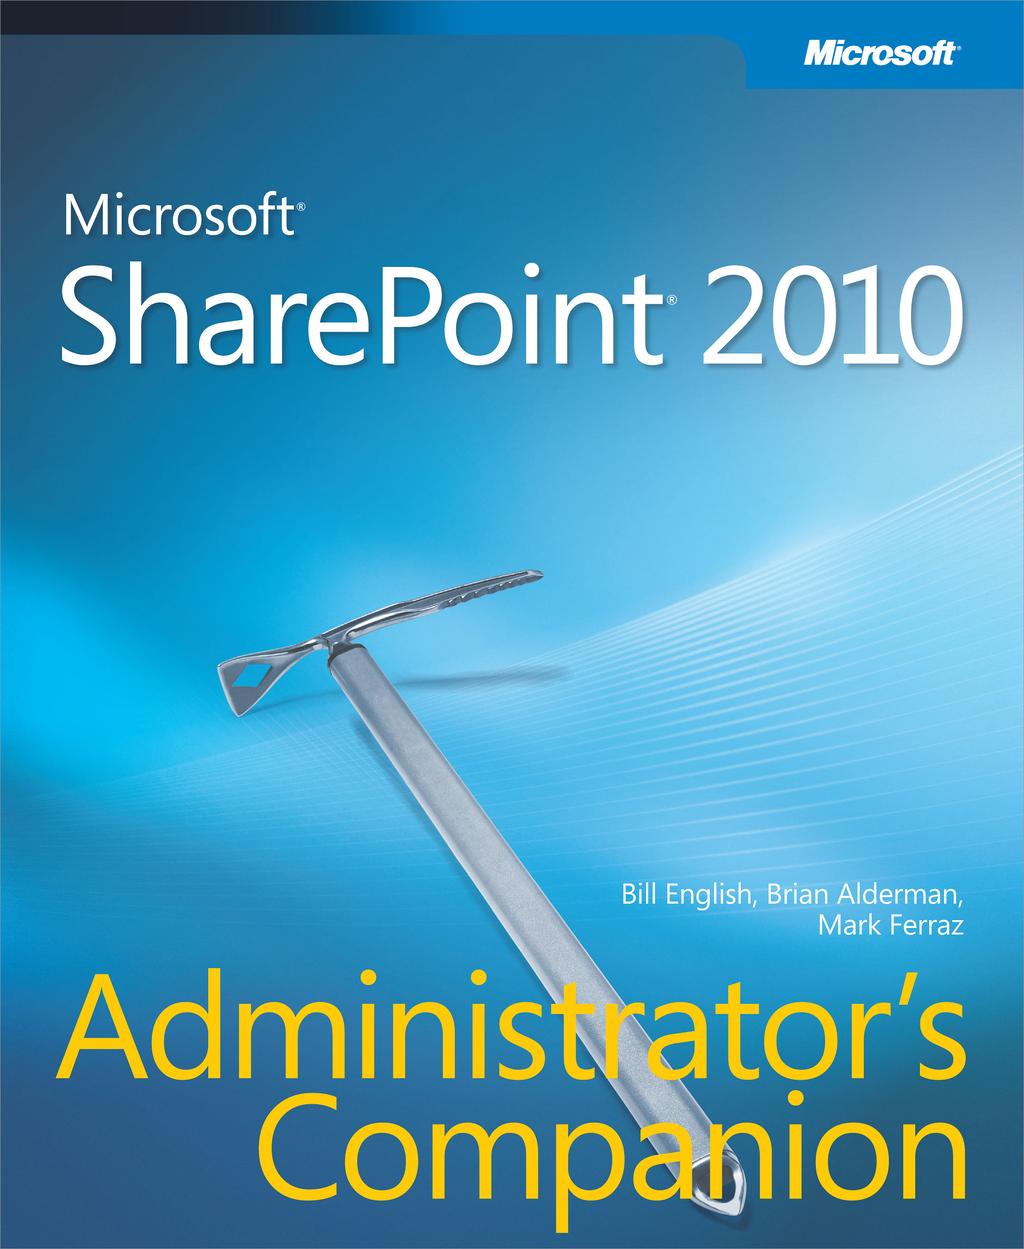 Microsoft® SharePoint® 2010 Administrator's Companion By: Bill English,Brian Alderman,Mark Ferraz